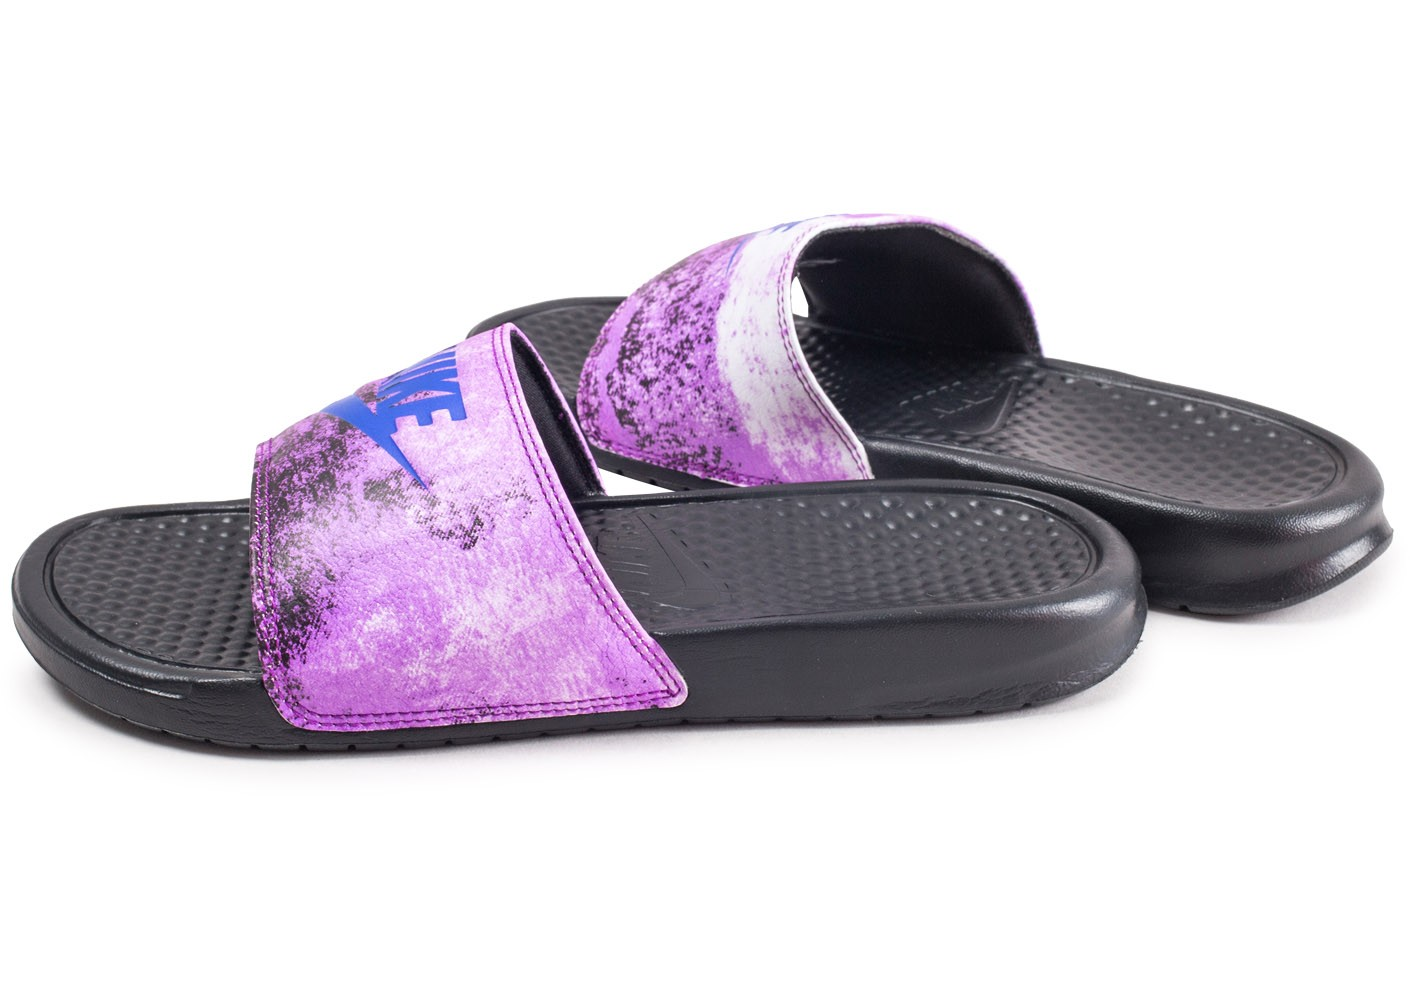 Sandales Violet It Just Do Print Benassi Baskets Nike Chaussures qSVUzGMp